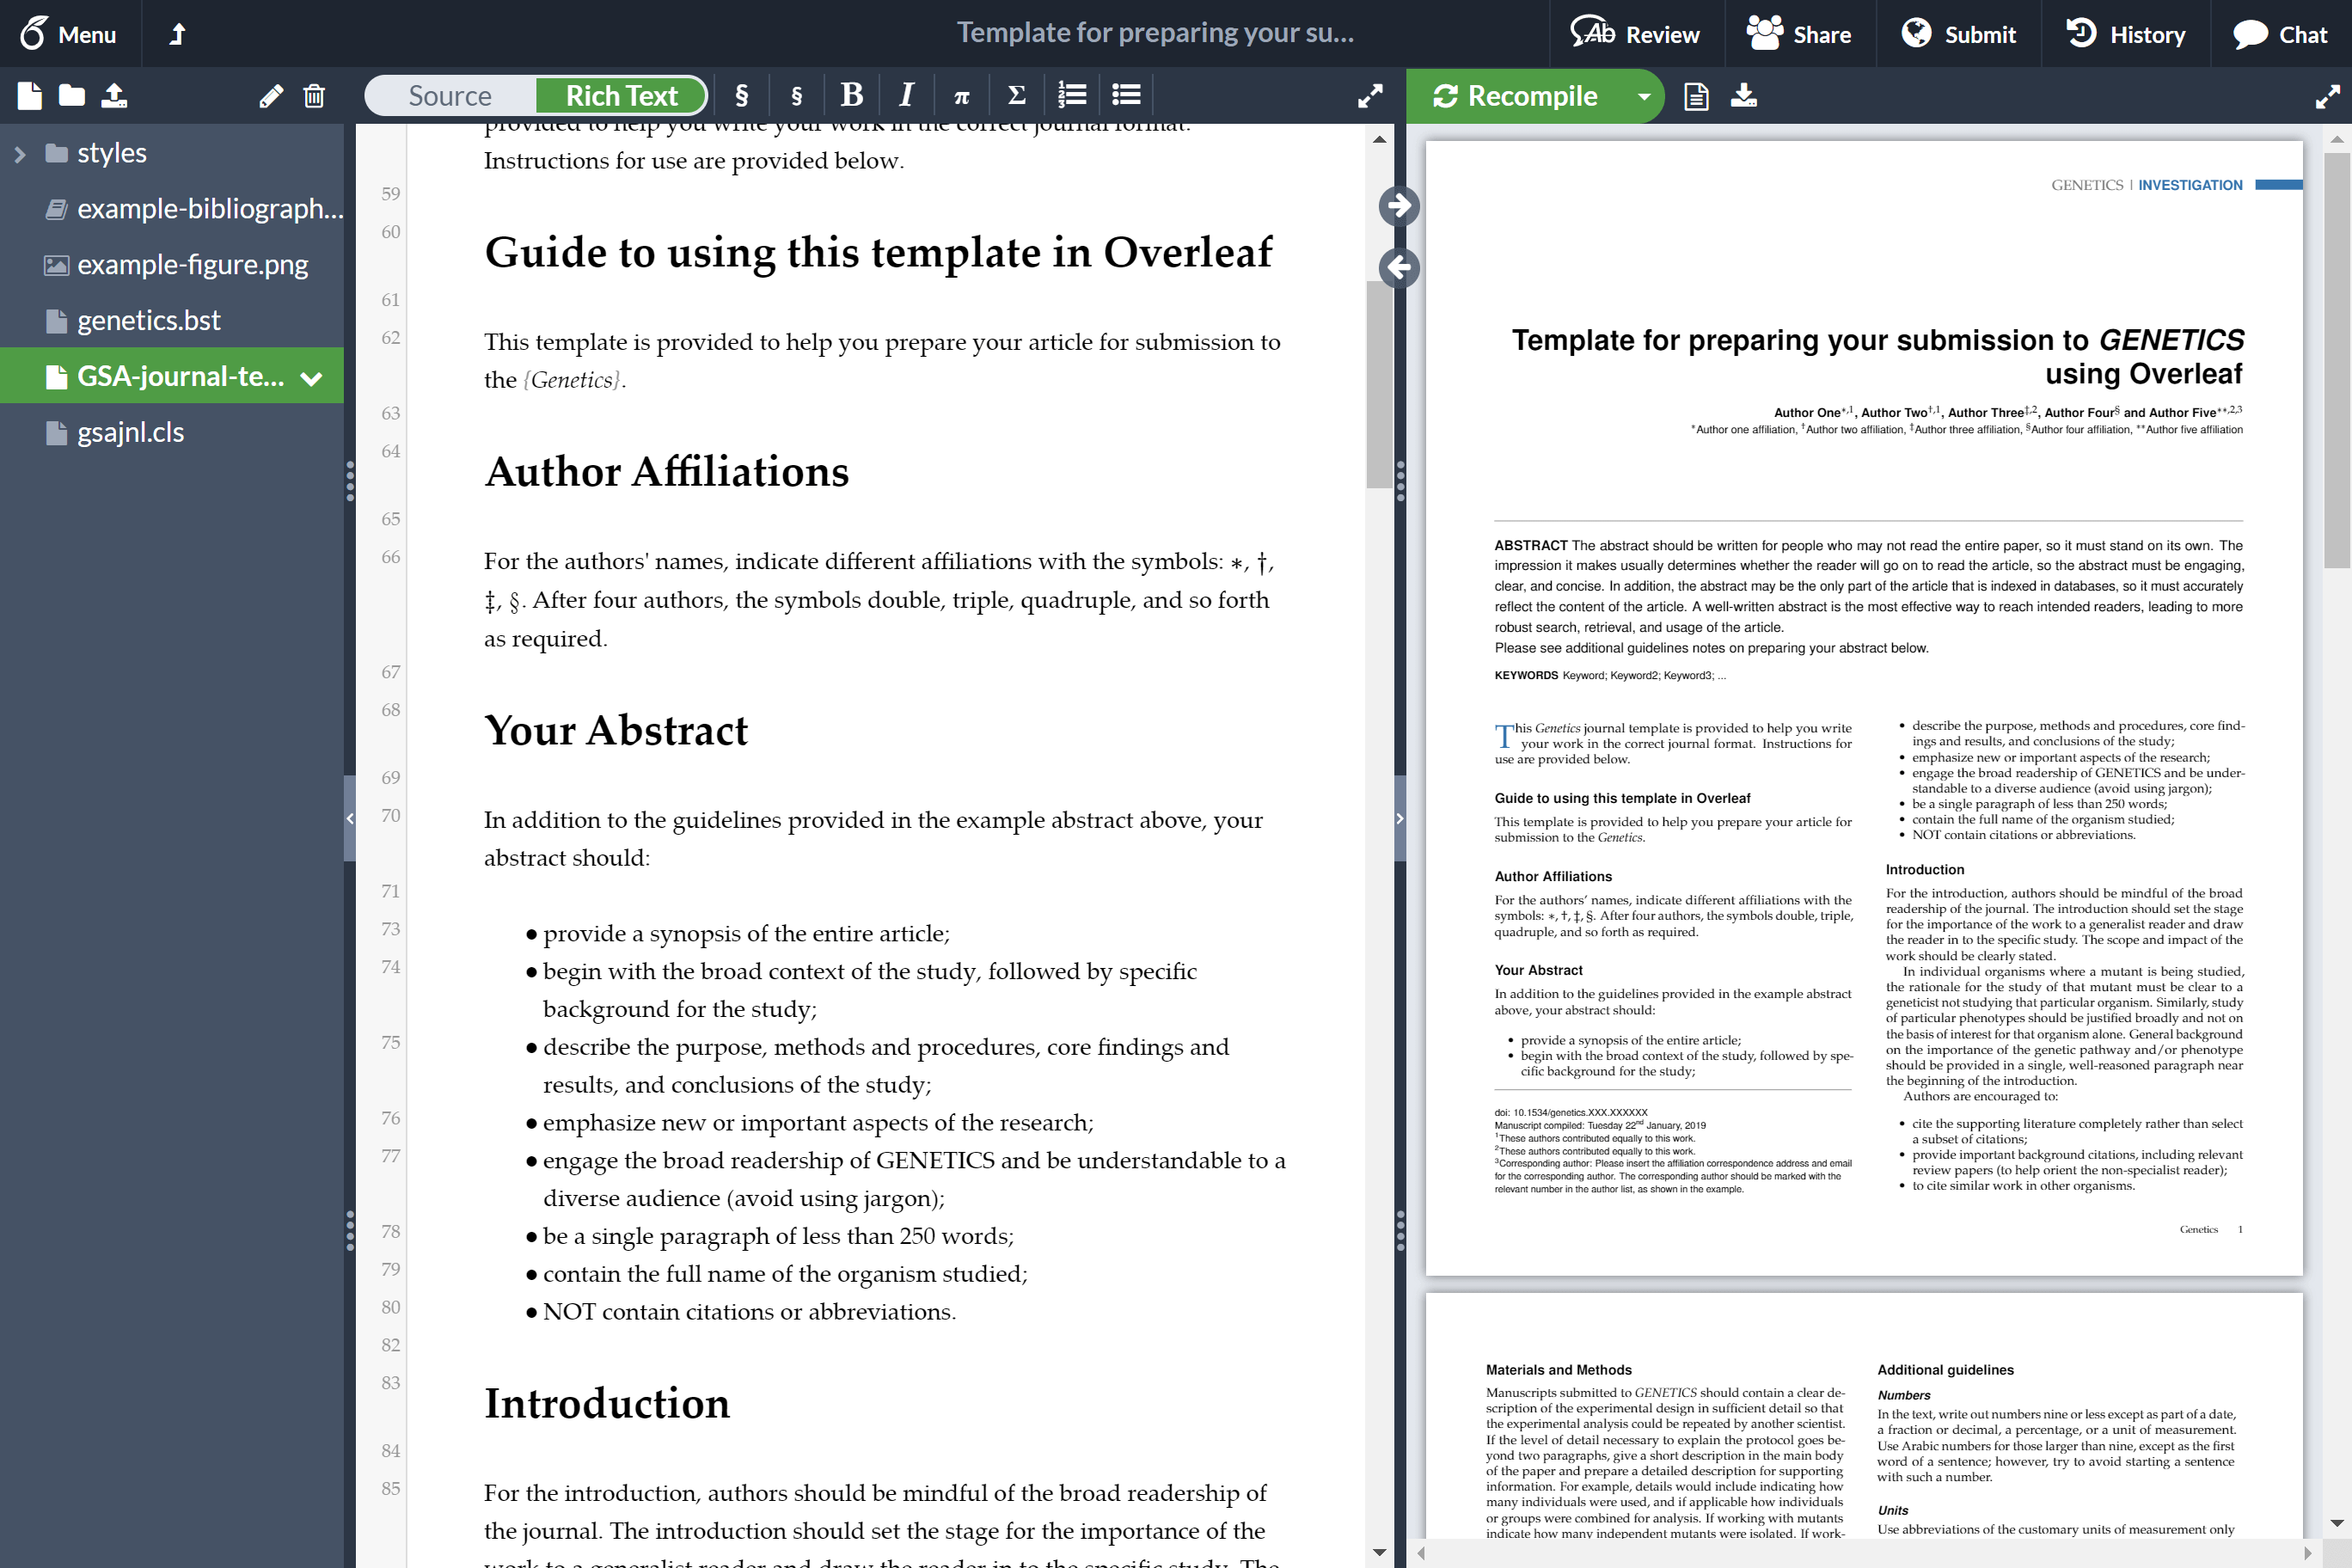 Overleaf-journal-template-richtext-example-b